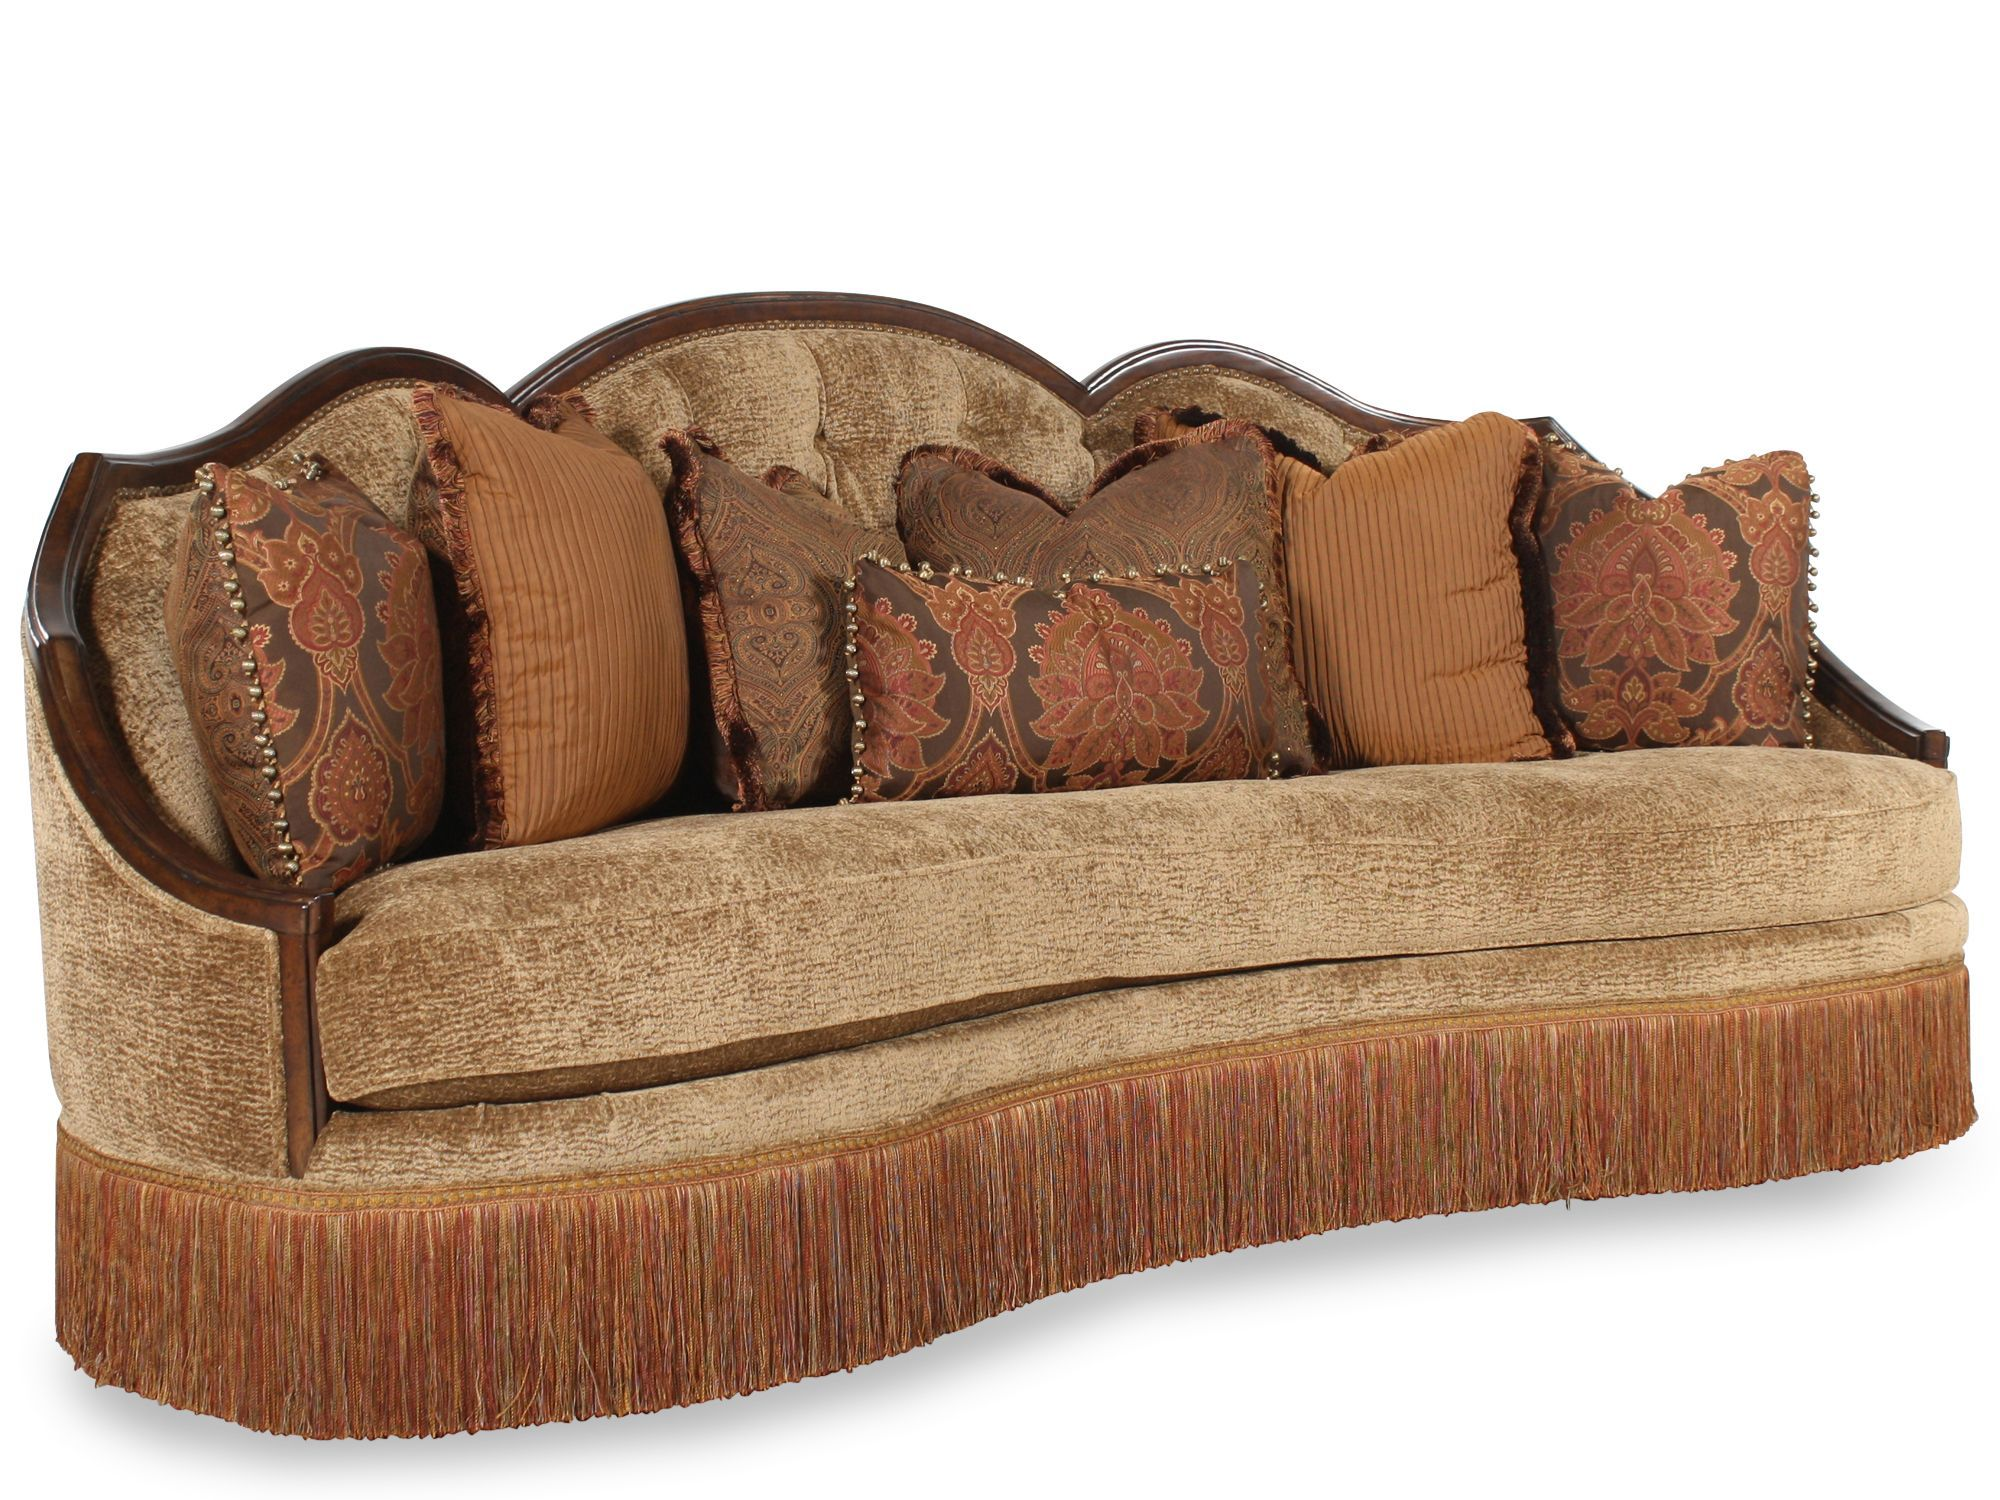 Traditional Living Room Furniture Traditional Living Room Fabric And Wood Trim Curved Sofa Rachlin